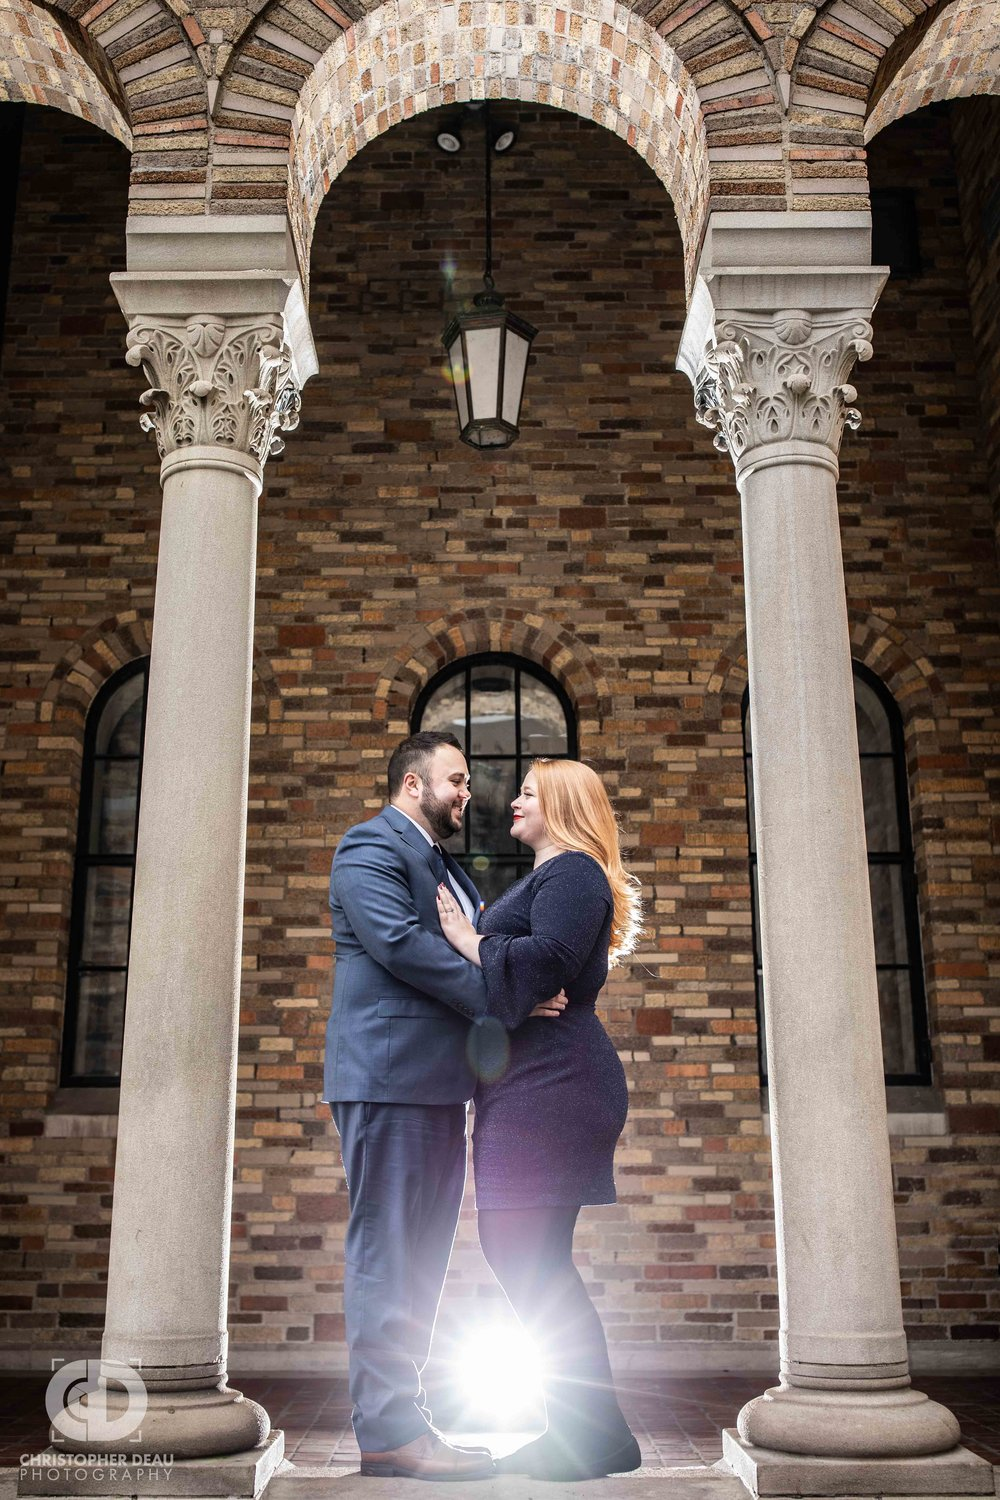 Fountain Street Church Grand Rapids, Michigan.  Engagement Session